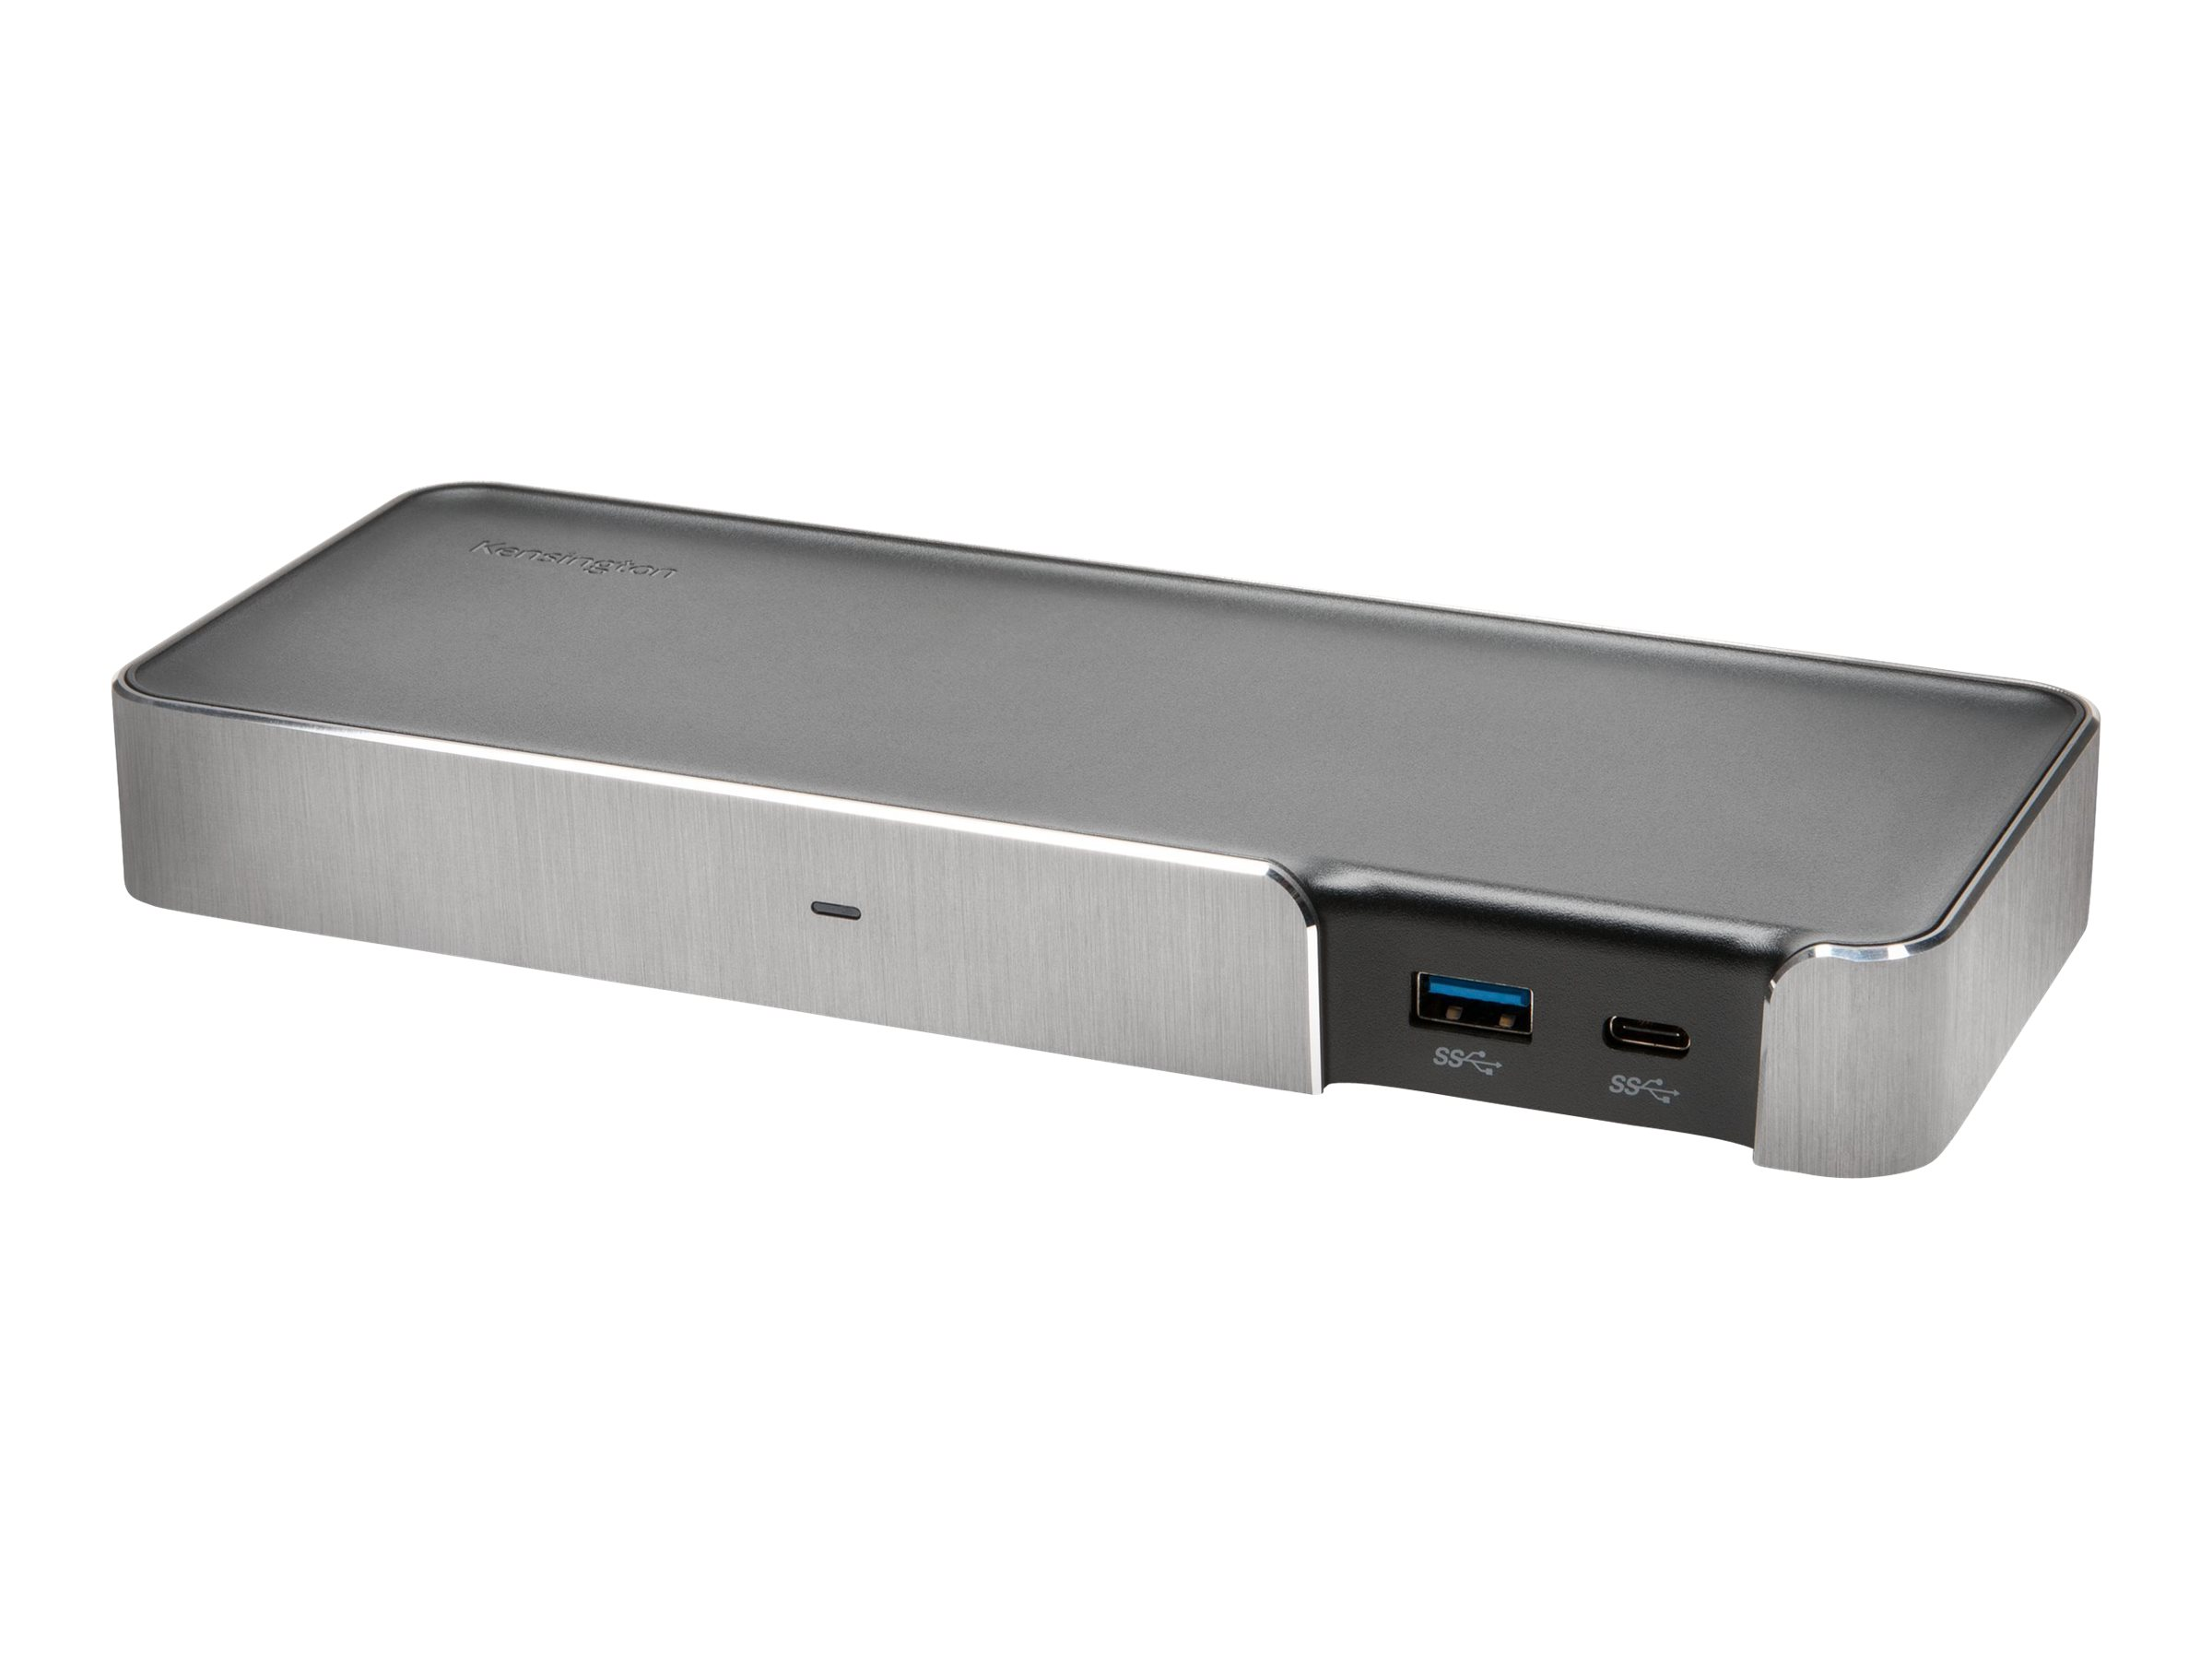 Kensington SD5200T Thunderbolt 3 40Gbps Dual 4K Docking Station with 170W adapter - Win/Mac - docking station - DP